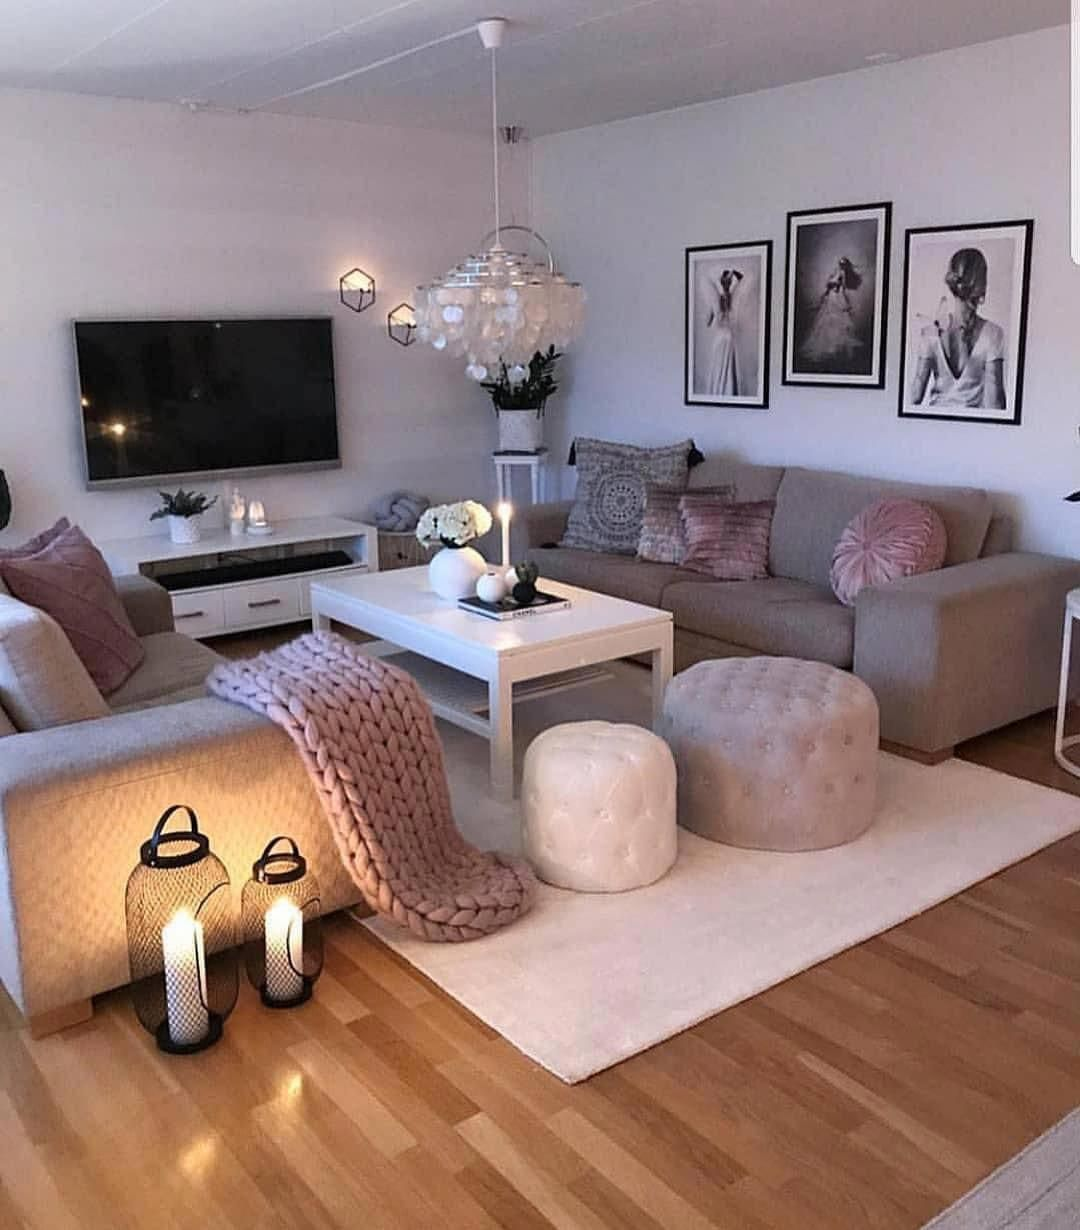 40 Most Beautiful Living Room Ideas 2021 Hairstylesofwomens Com Apartment Living Room Design Brown Living Room Small Apartment Living Room